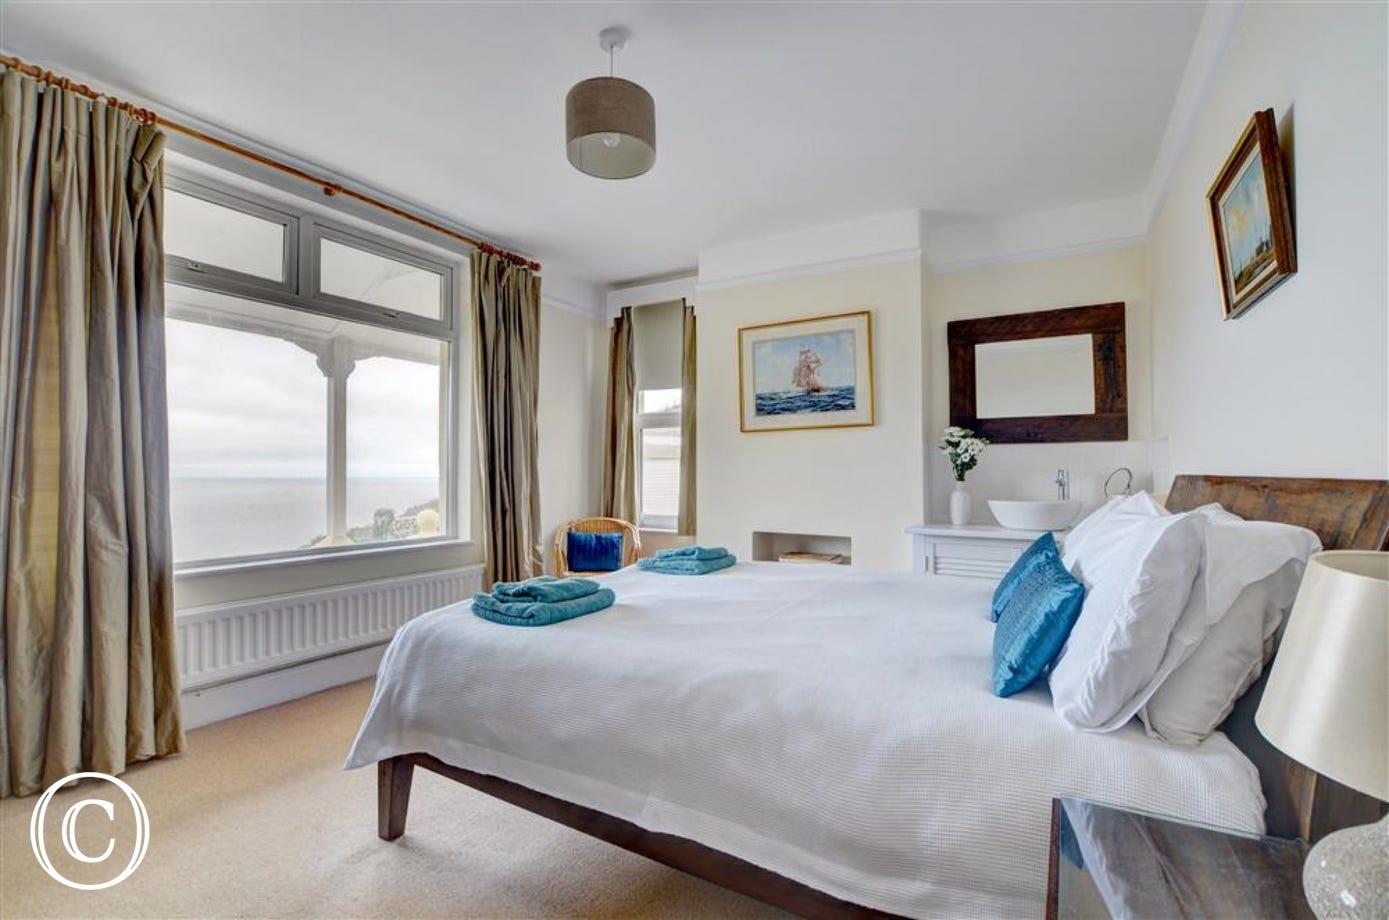 Stunning views from the master bedroom with kingsize bed